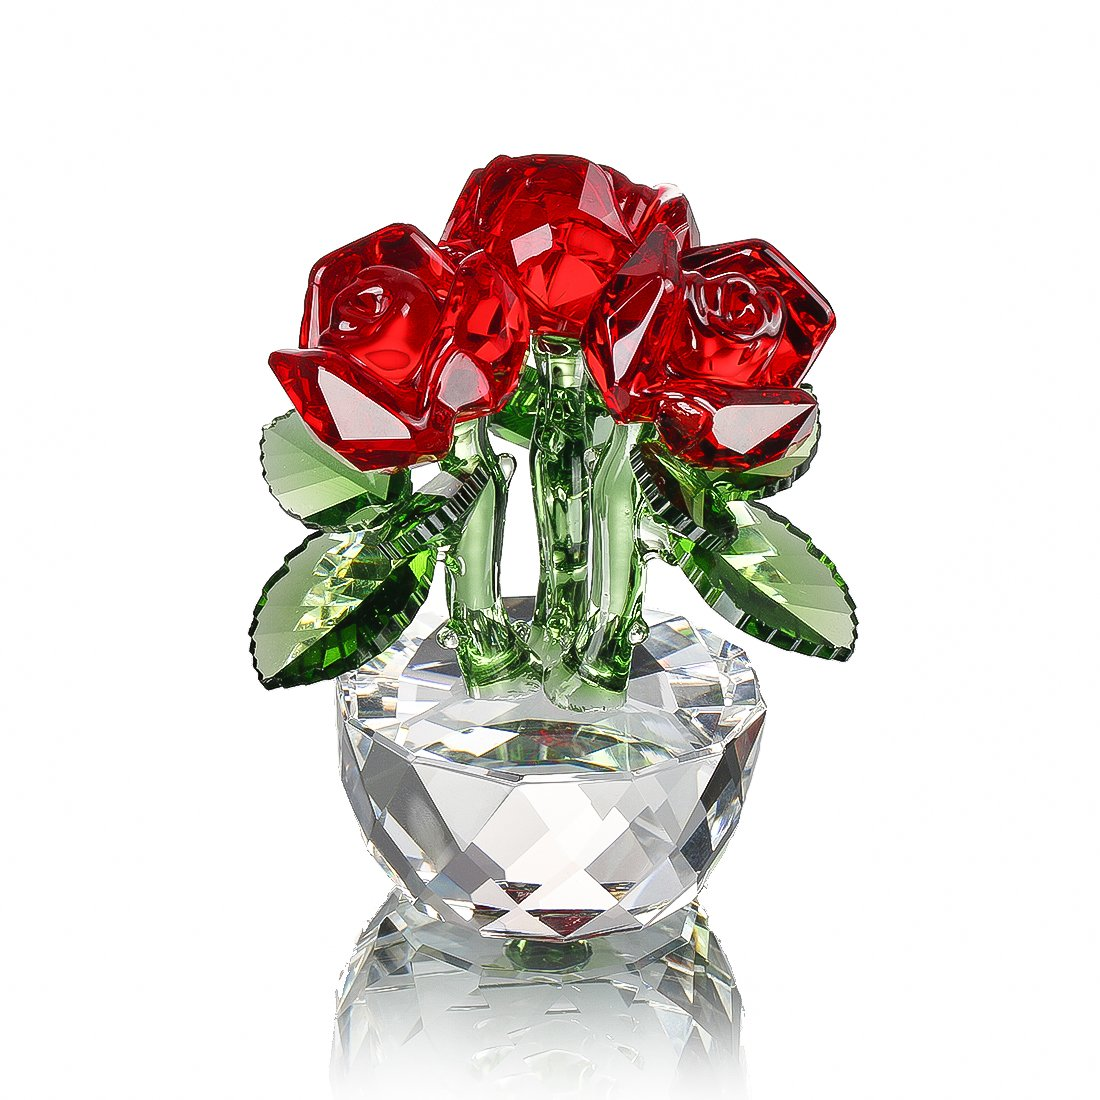 Amazon.com: H&D Red Crystal Rose Bouquet Flowers Figurines Ornament ...